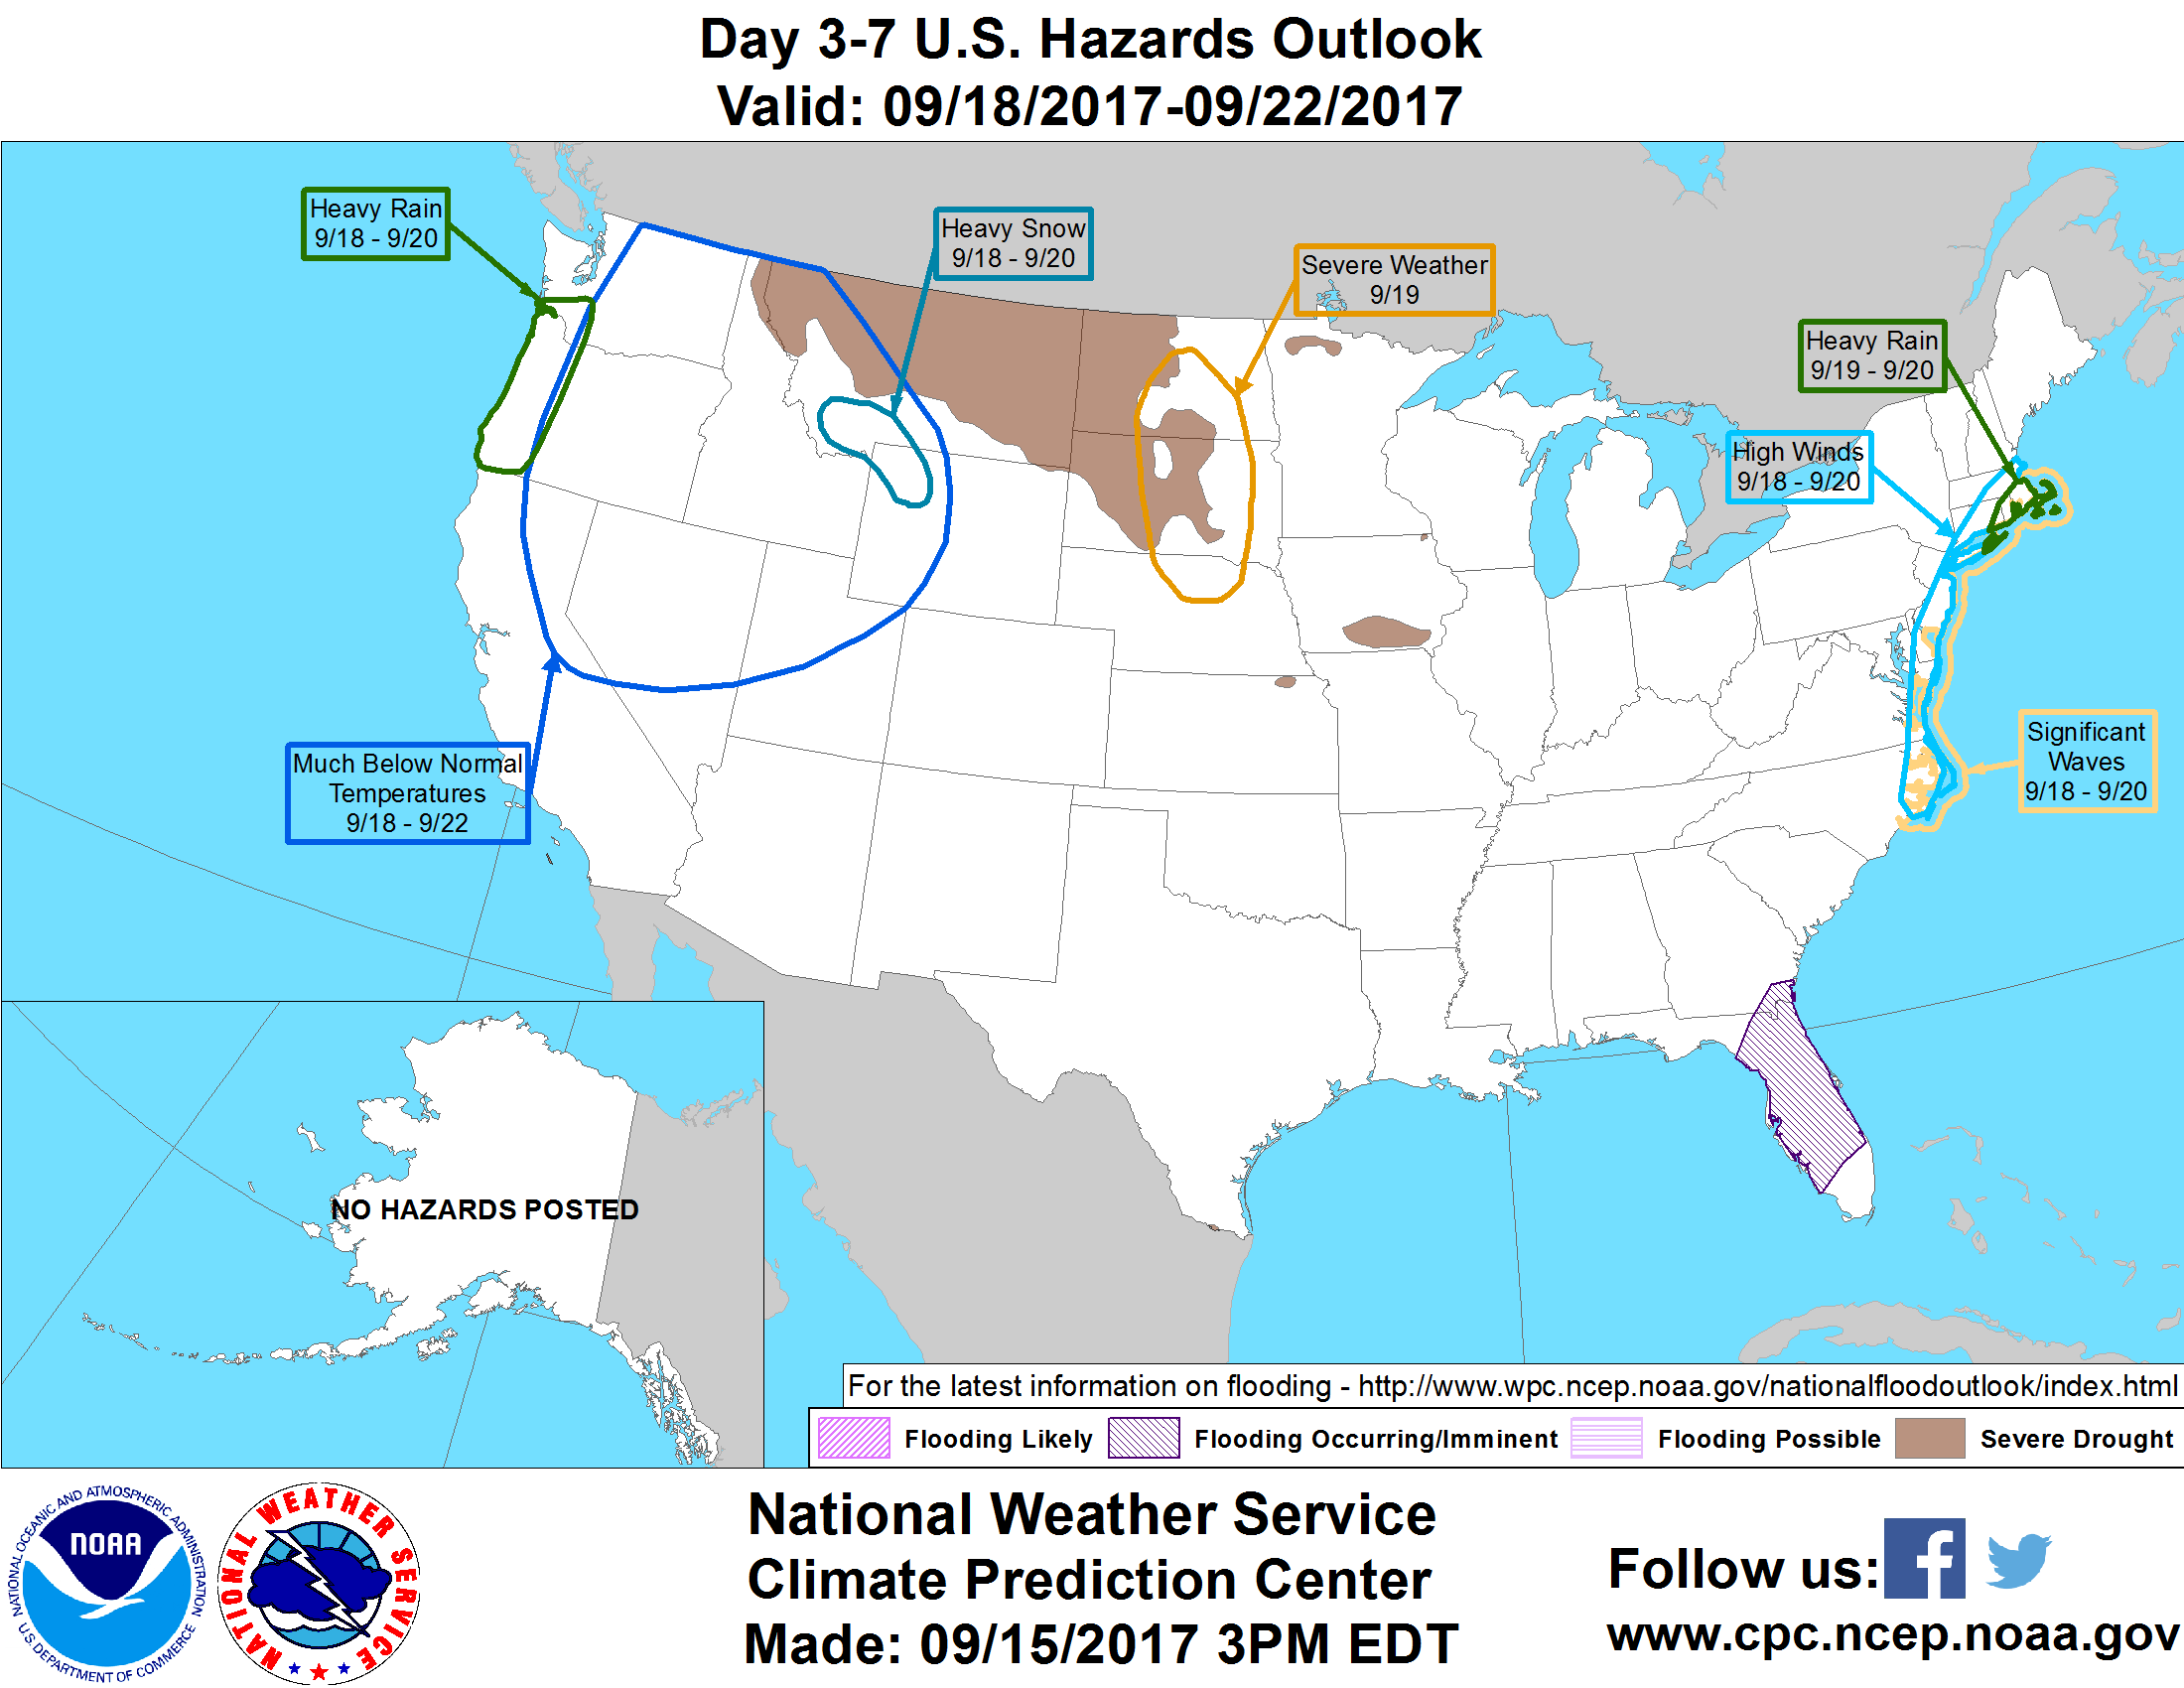 Whiff Of Autumn Sunday Jose May Get Loopy StarTribunecom - Map of the us hazards comic